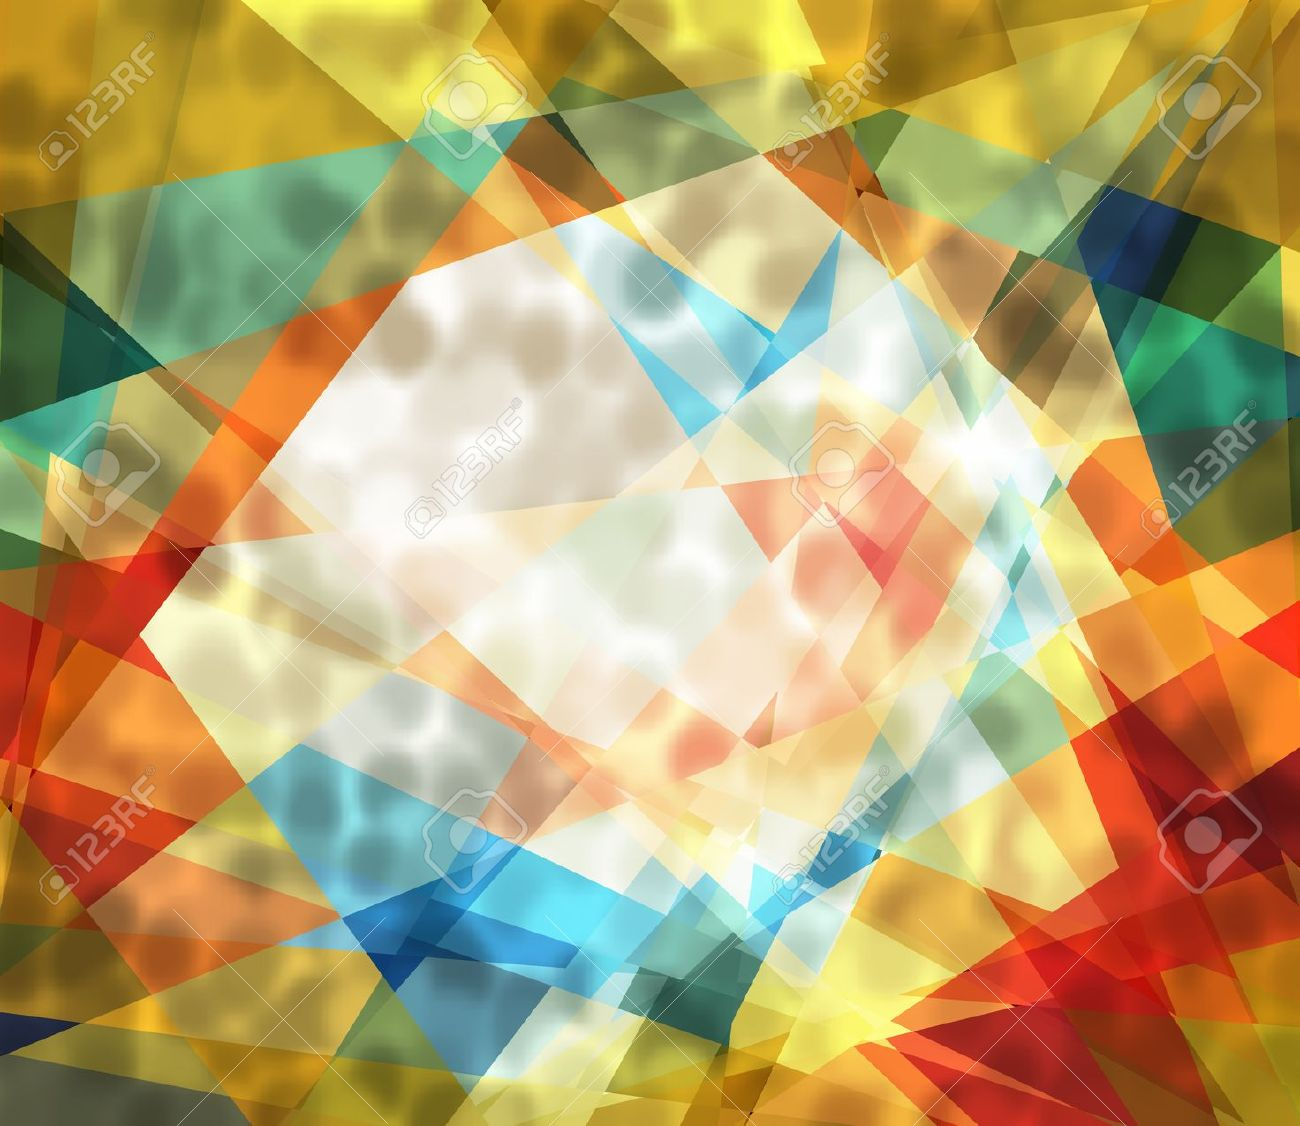 Pics photos merry christmas argyle twitter backgrounds - Argyle Background Galaxy Colorful Cubism Abstract Background